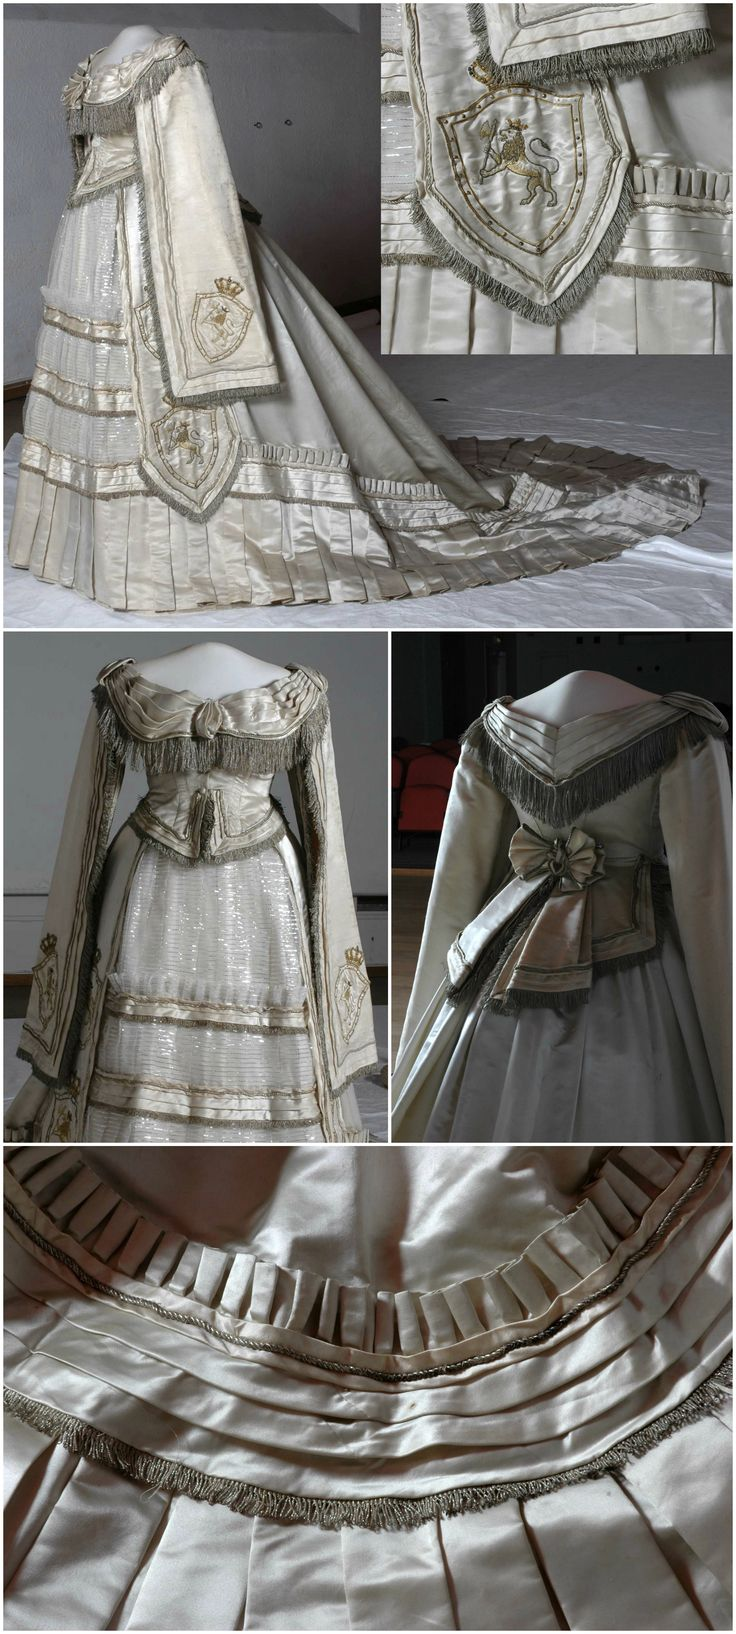 Coronation dress [shown here without train], 1872, Norwegian Folk Museum, via DigitaltMuseum. Photos: Reinsfelt, Anne-Lise / Norwegian Folk Museum. Worn to the Norwegian coronation of King Oscar II of Sweden and Norway in 1873 [most likely by his consort, Sofia of Nassau, as indicated by the crowned lions wielding axes, an emblem of Norwegian royalty, that have been appliqued onto the dress. In fact, this dress is similar in style to the outfit she wore for her coronation as queen of…